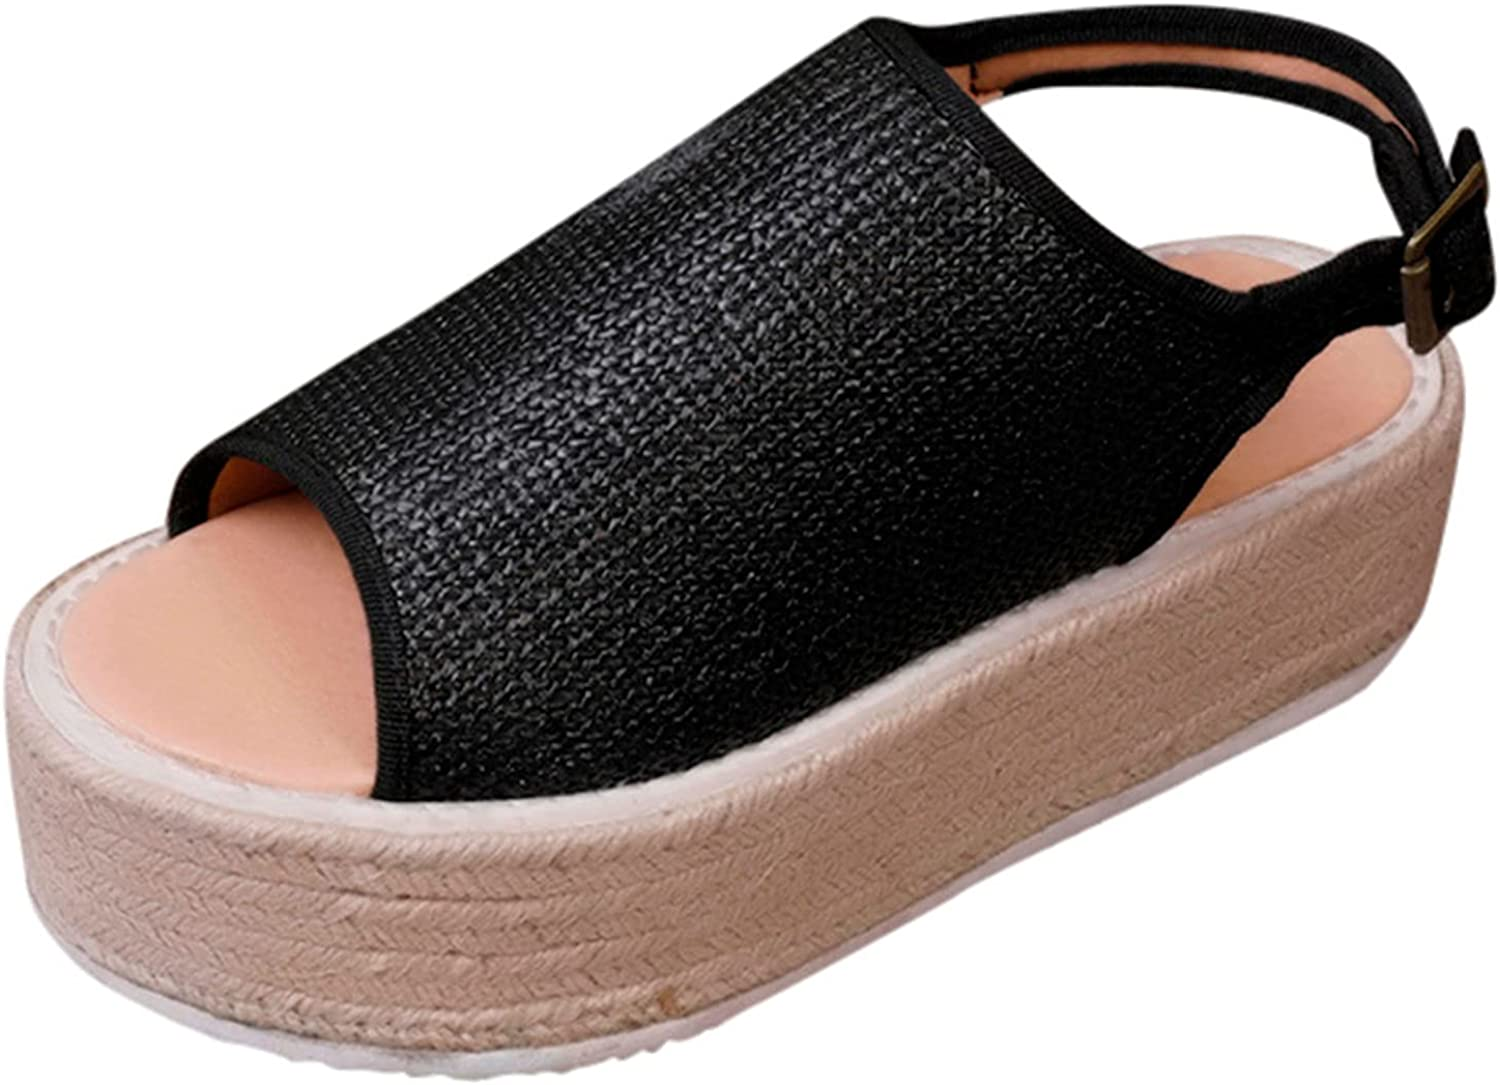 Nihewoo Sandals for Women Casual Summer Soled with Thick H Shoes 25% OFF Max 75% OFF